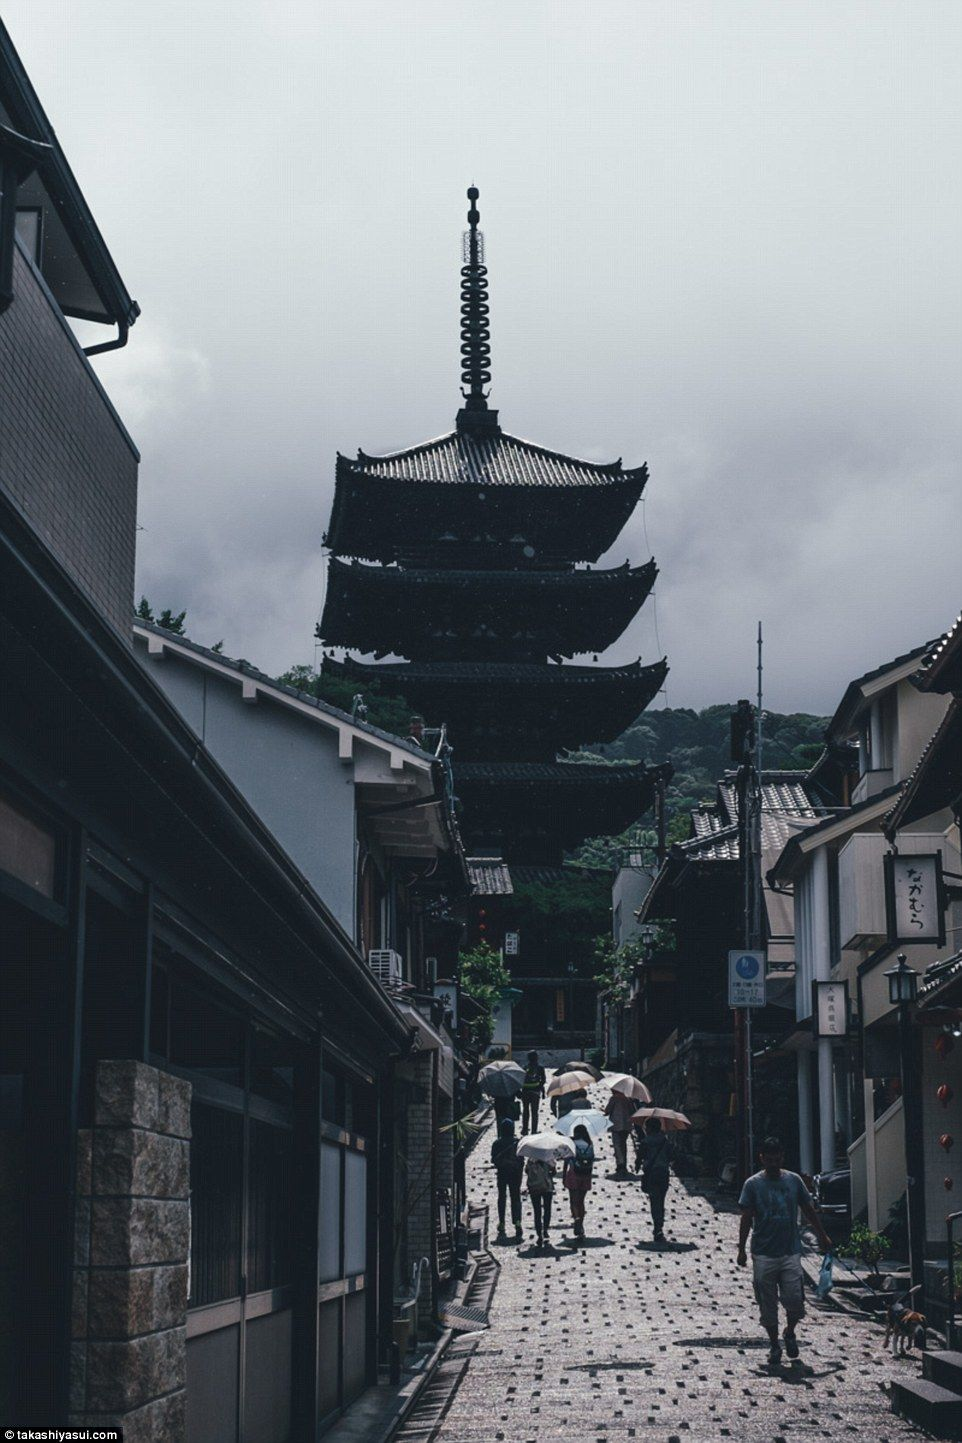 Yasaka Pagoda, the last remnant of Hokanji Temple, is one of the most visible and recognizable landmarks in the Higashiyama District